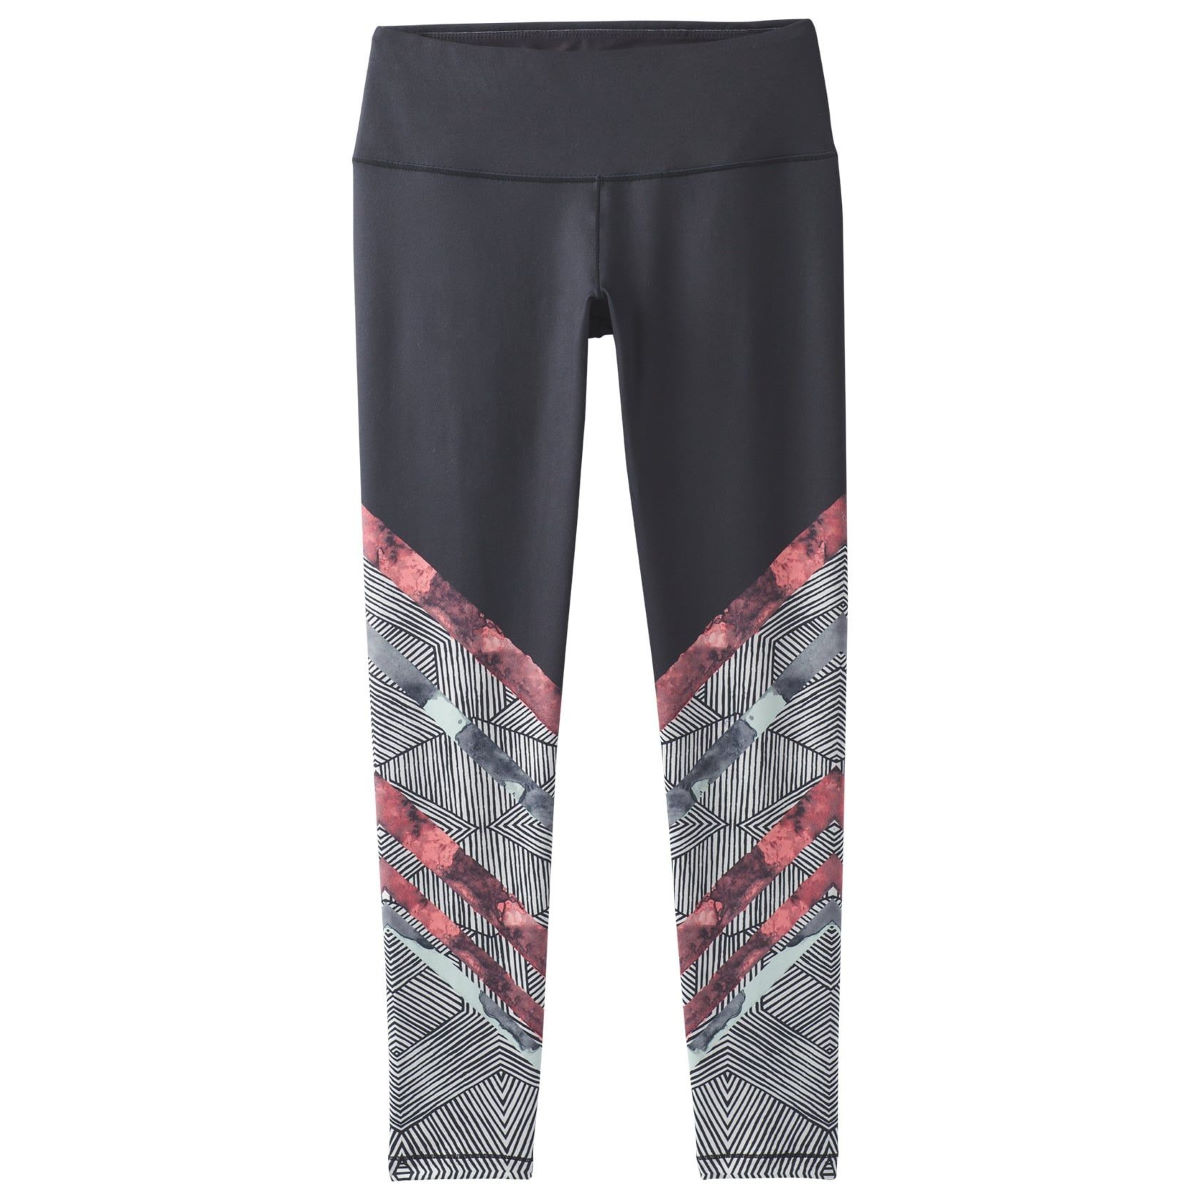 PrAna Women's Pillar Printed Yoga Legging - Mallas